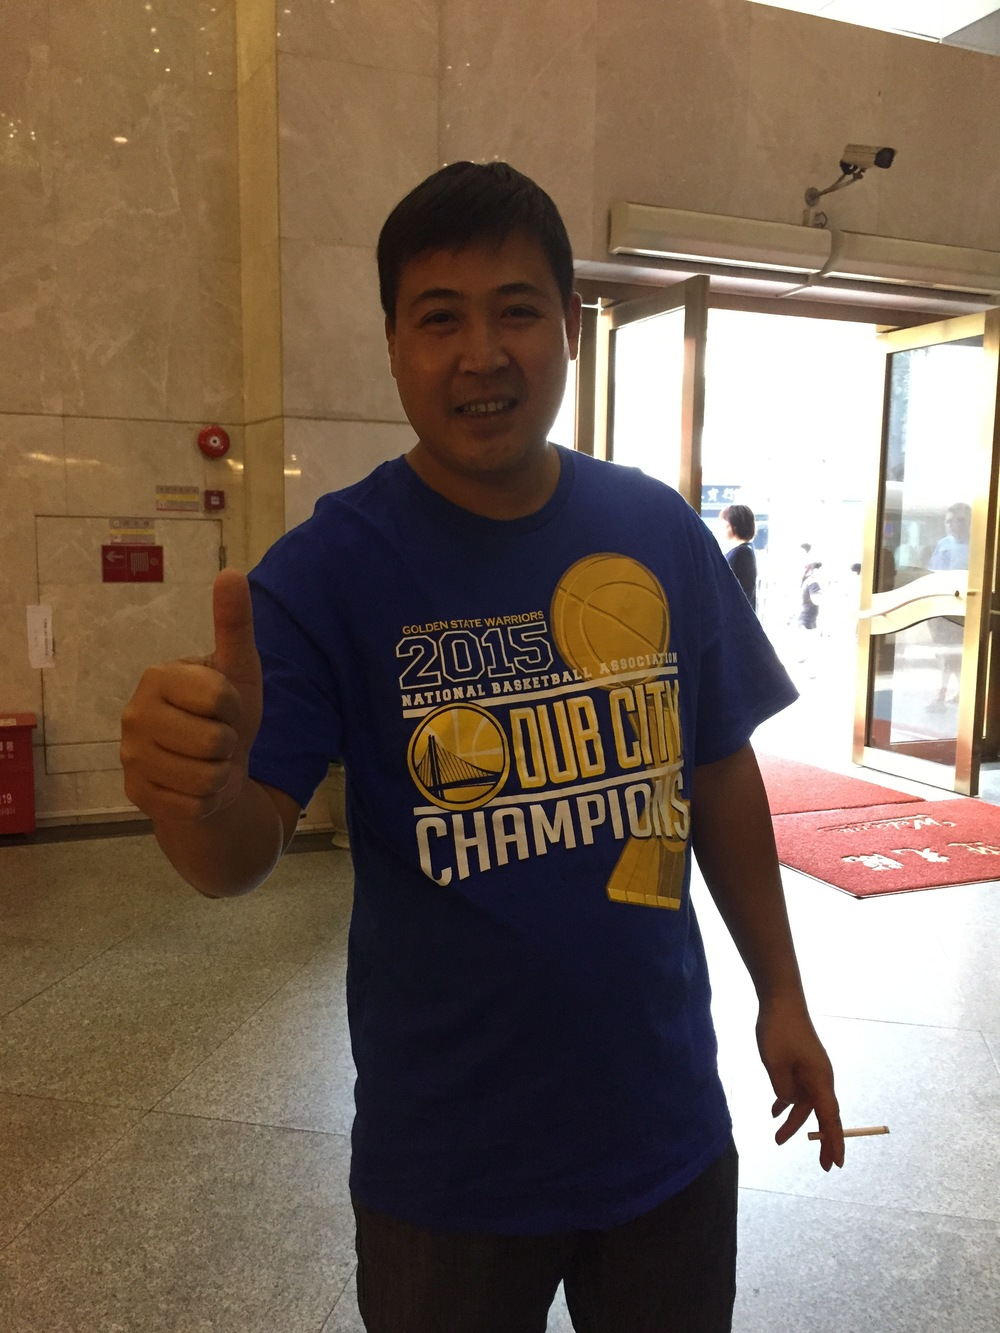 Sifu, Golden State's number one fan!